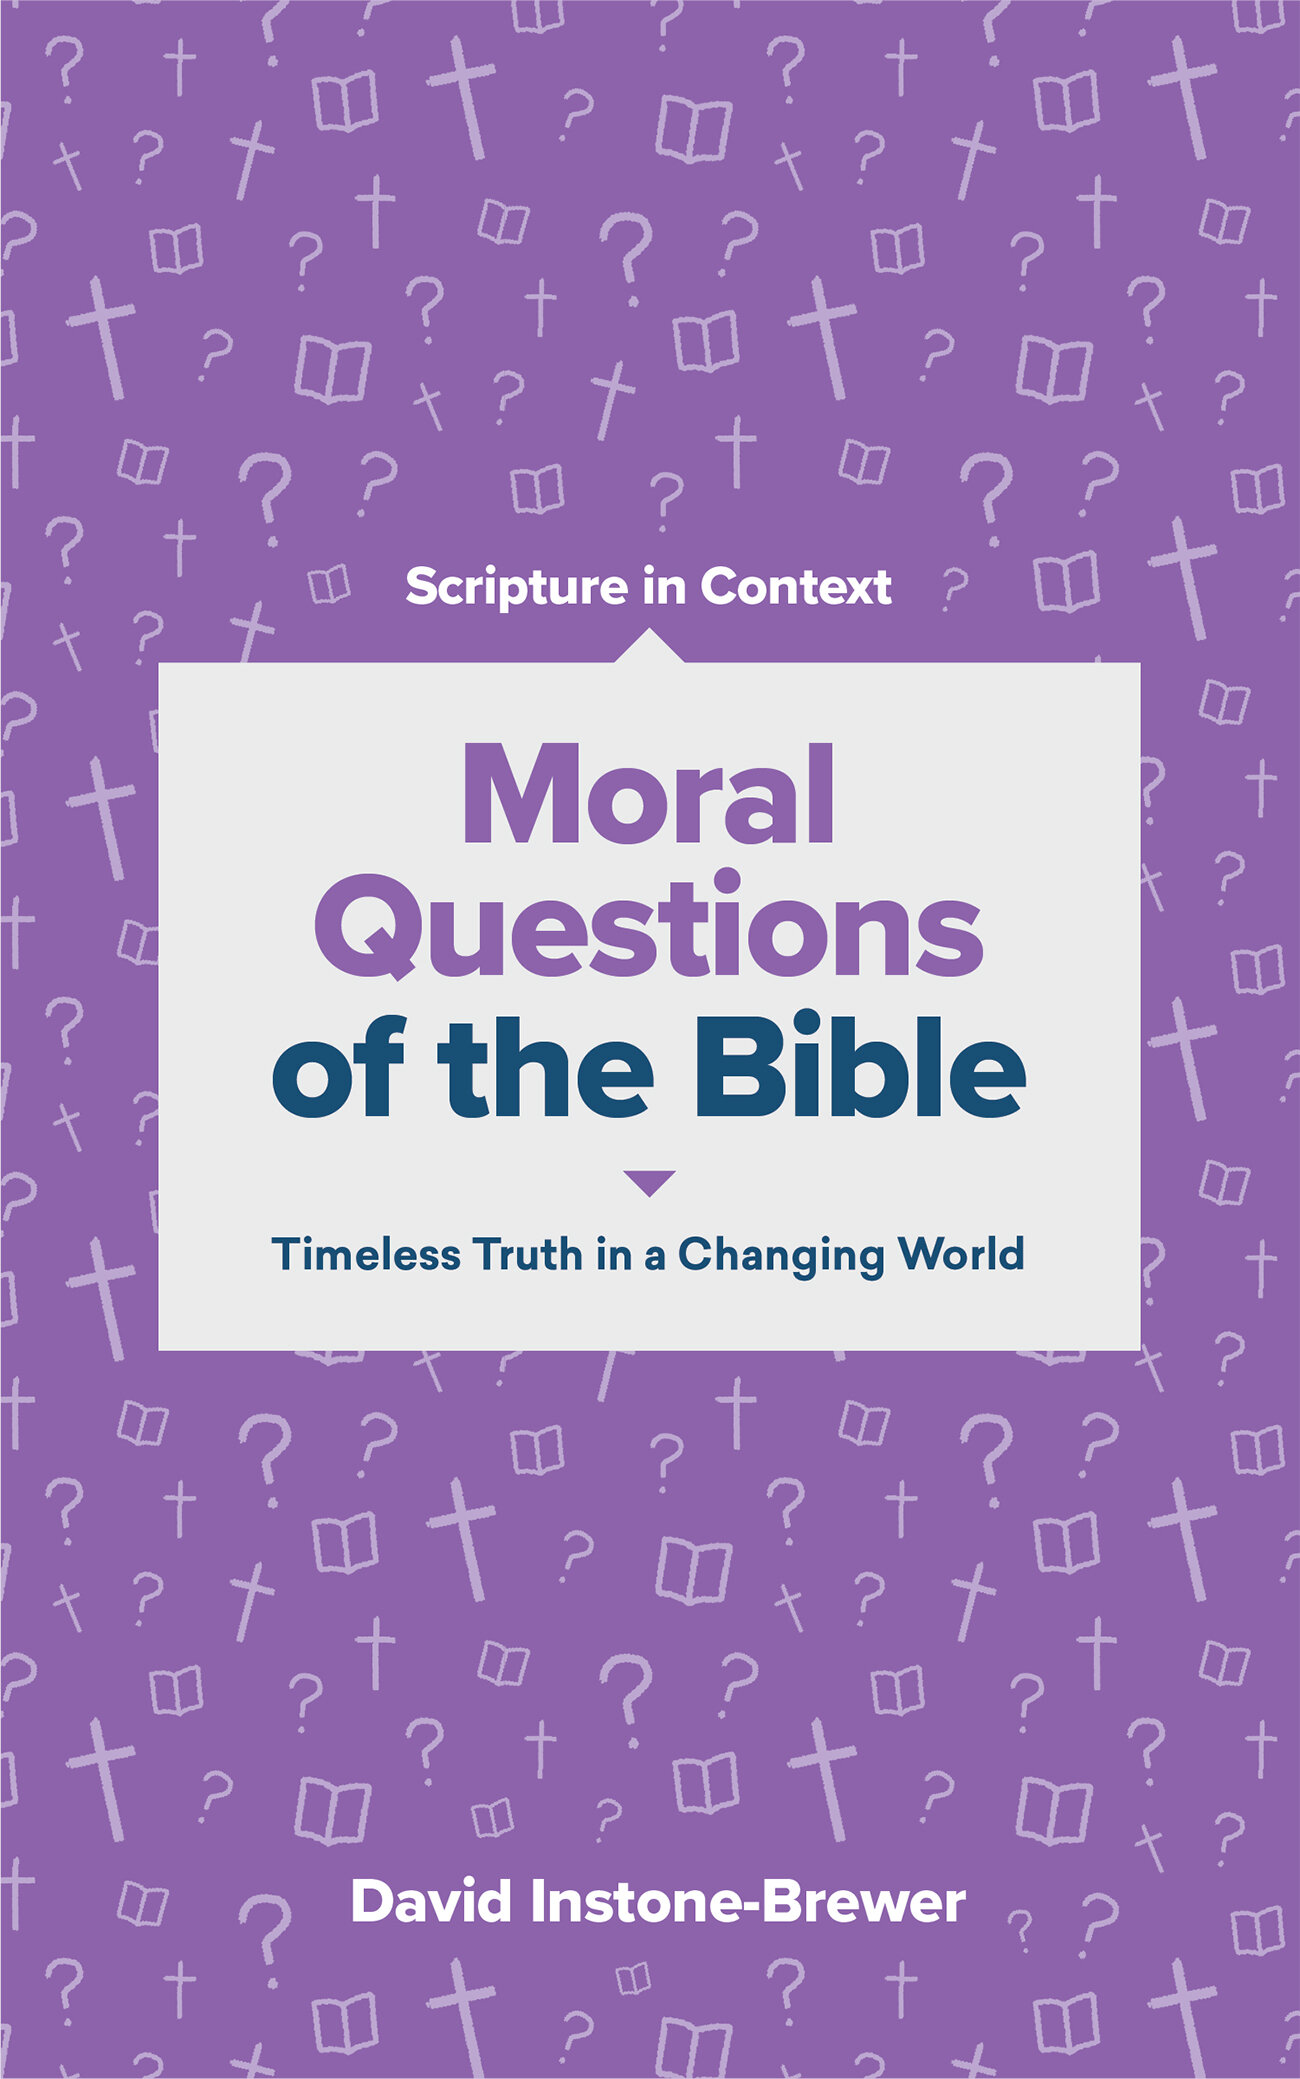 Moral Questions of the Bible: Timeless Truth in a Changing World